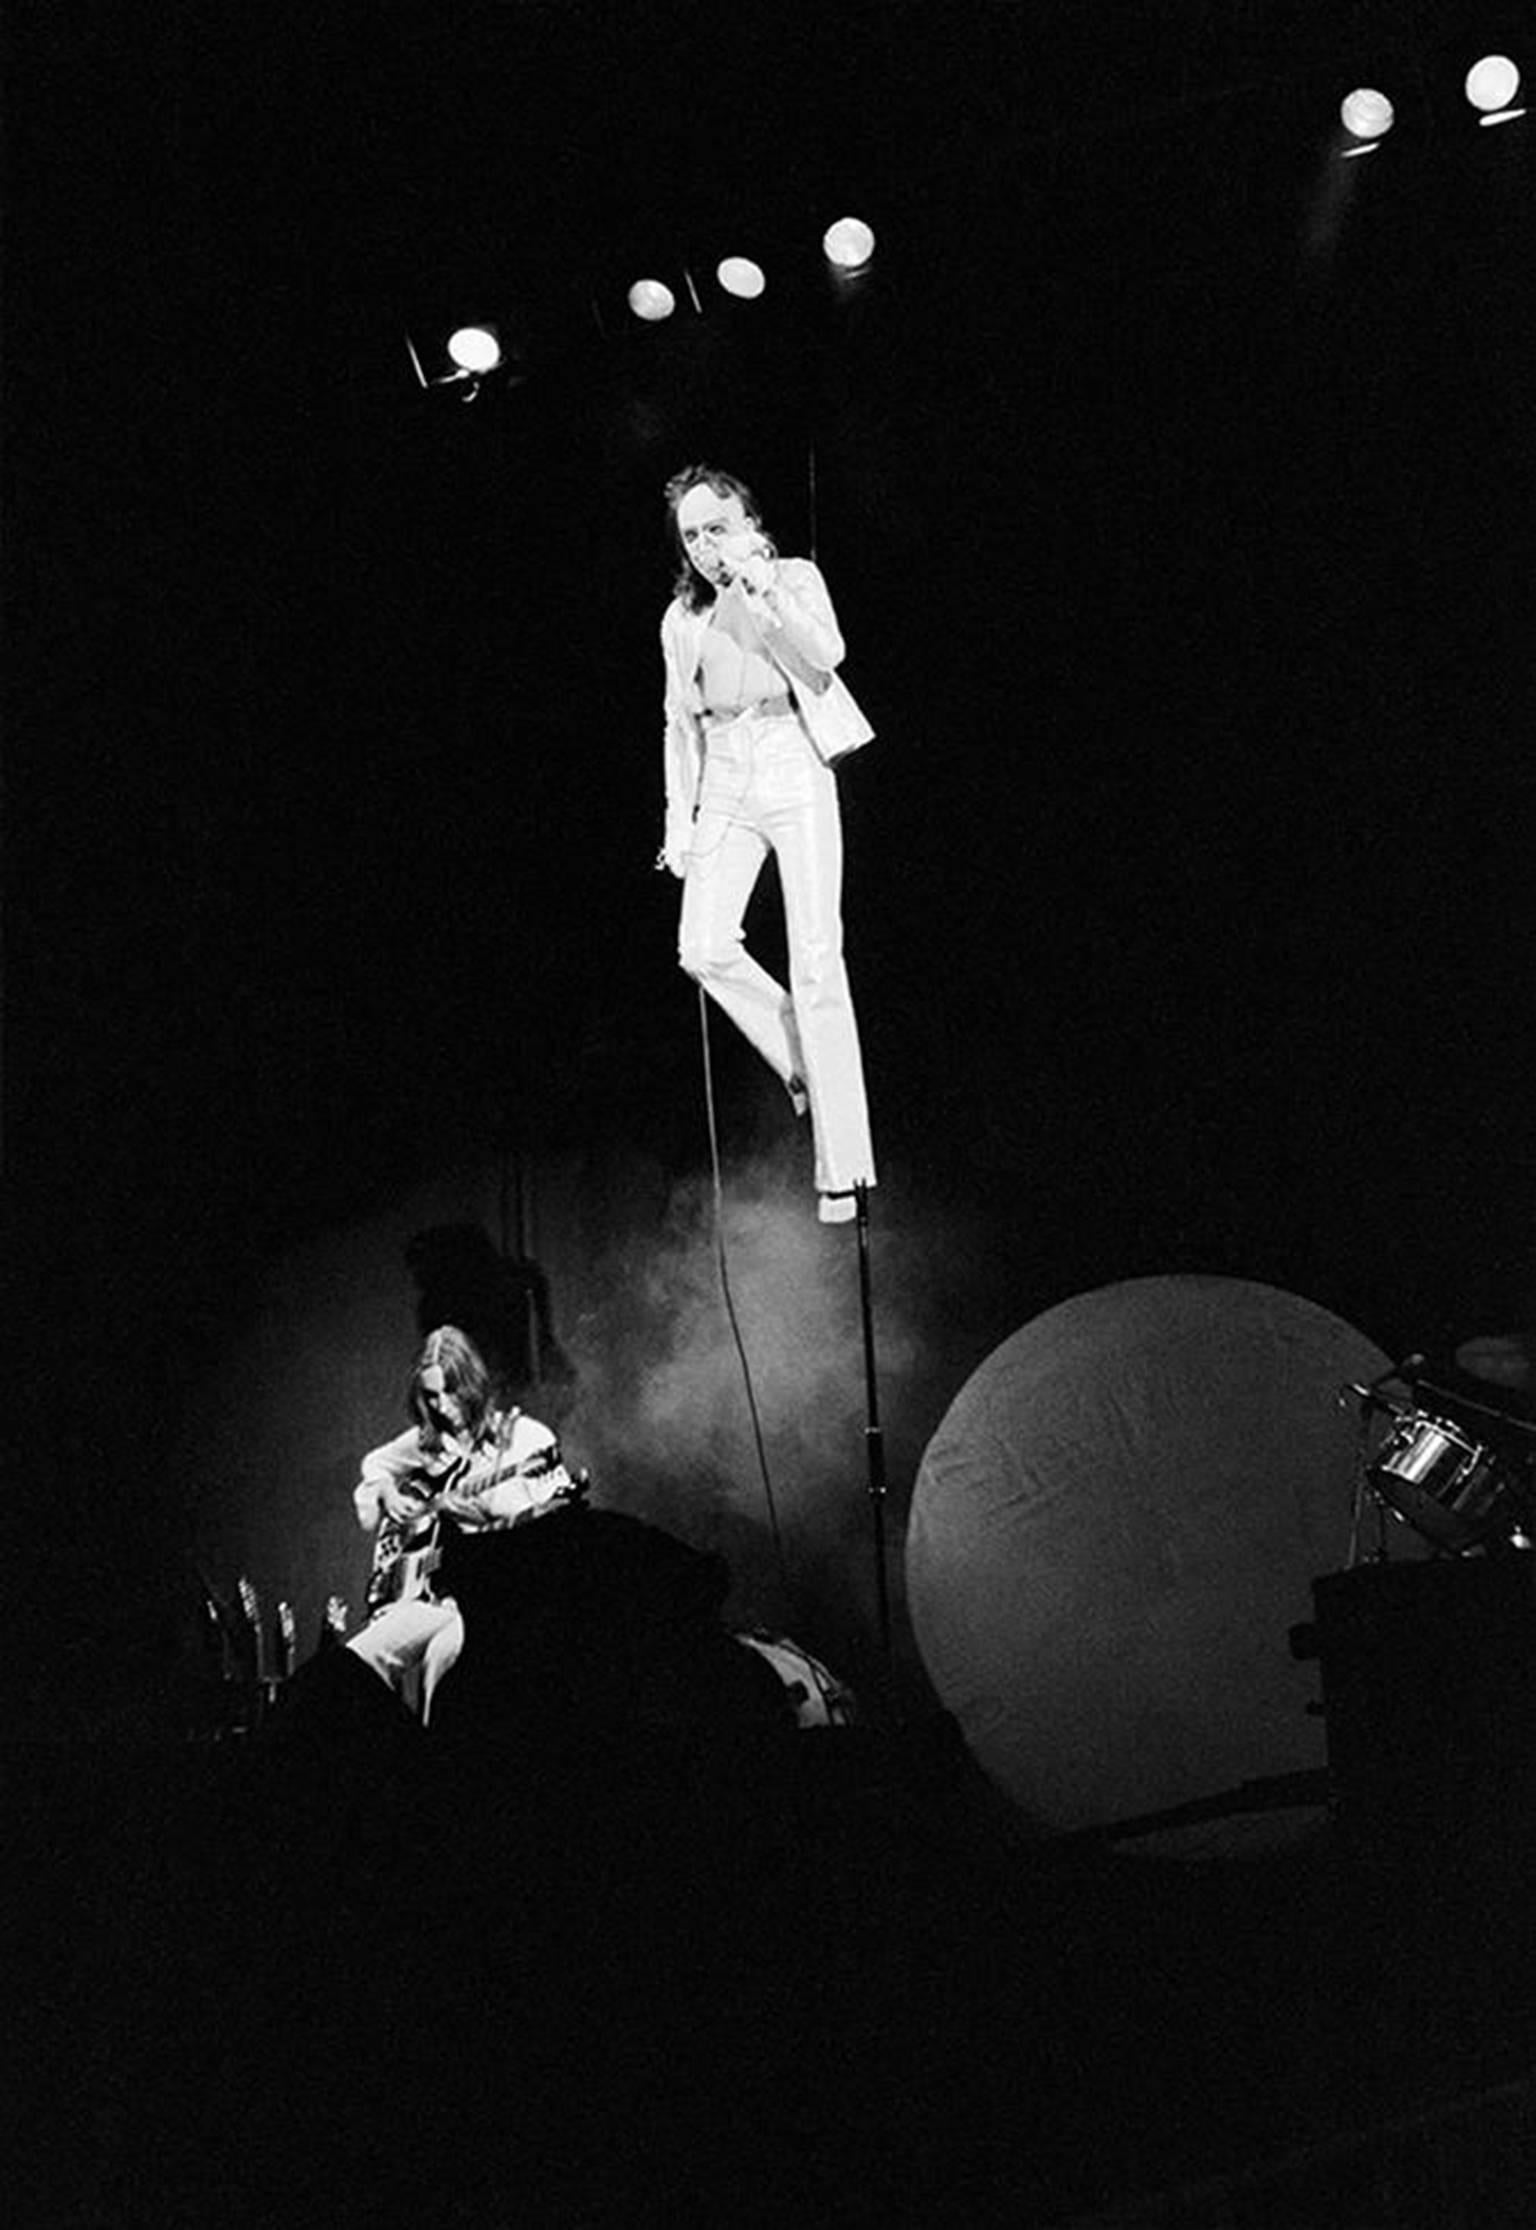 Peter Gabriel with Genesis at Philharmonic Hall in NYC, 1974